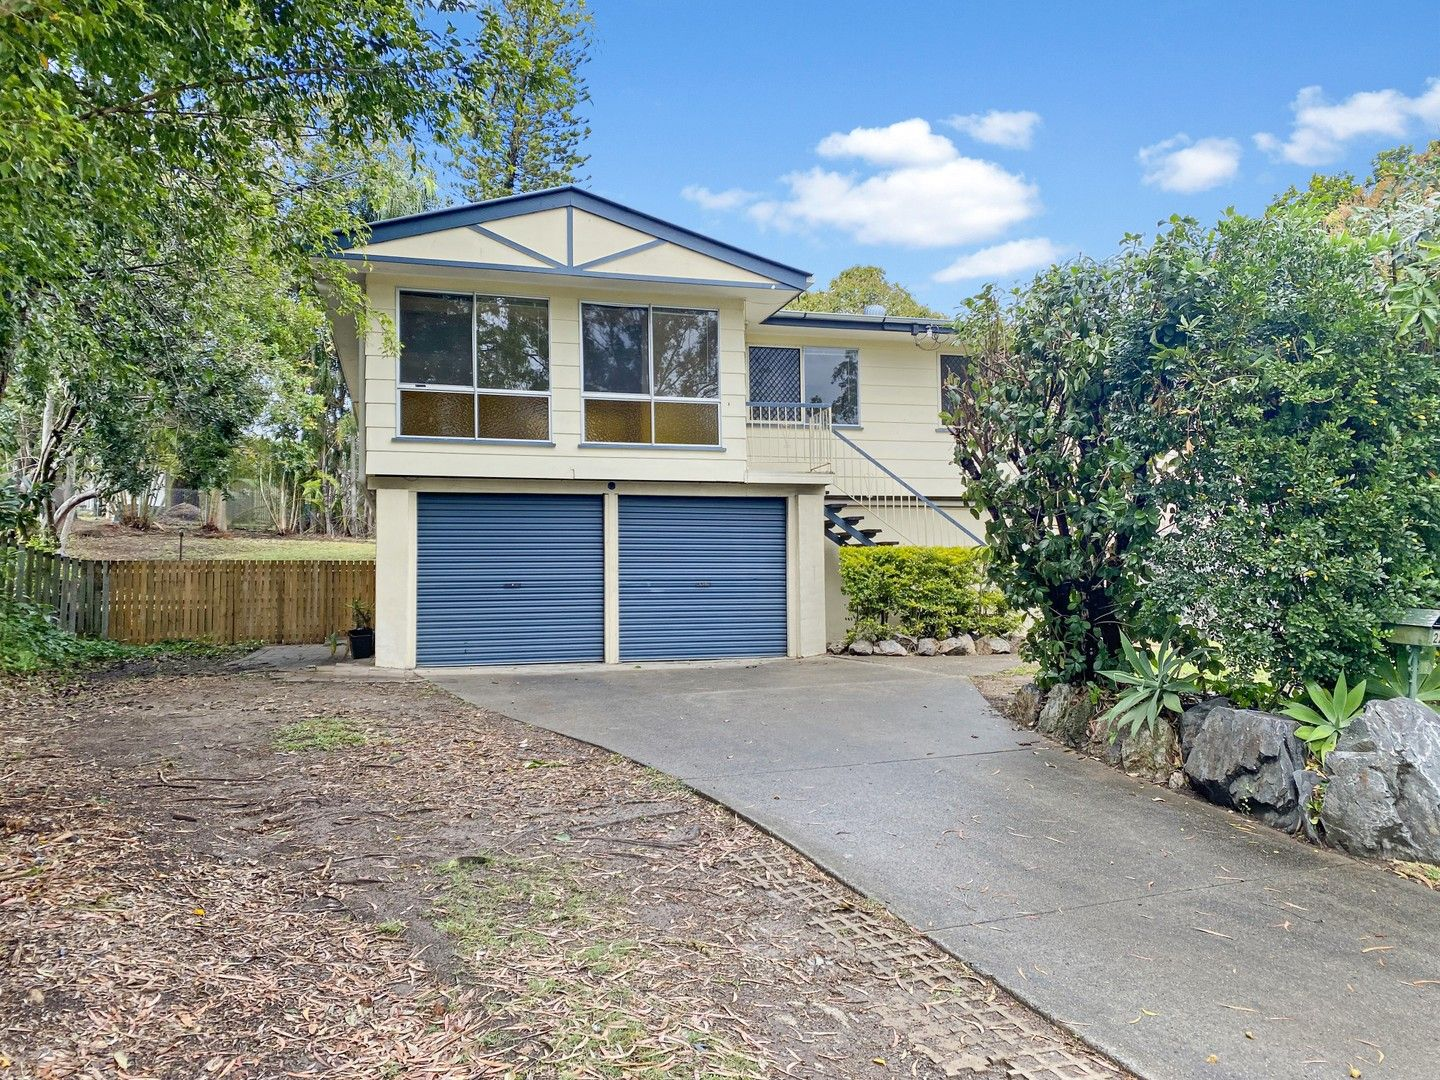 3 bedrooms House in 22 KERRONG COURT SHAILER PARK QLD, 4128